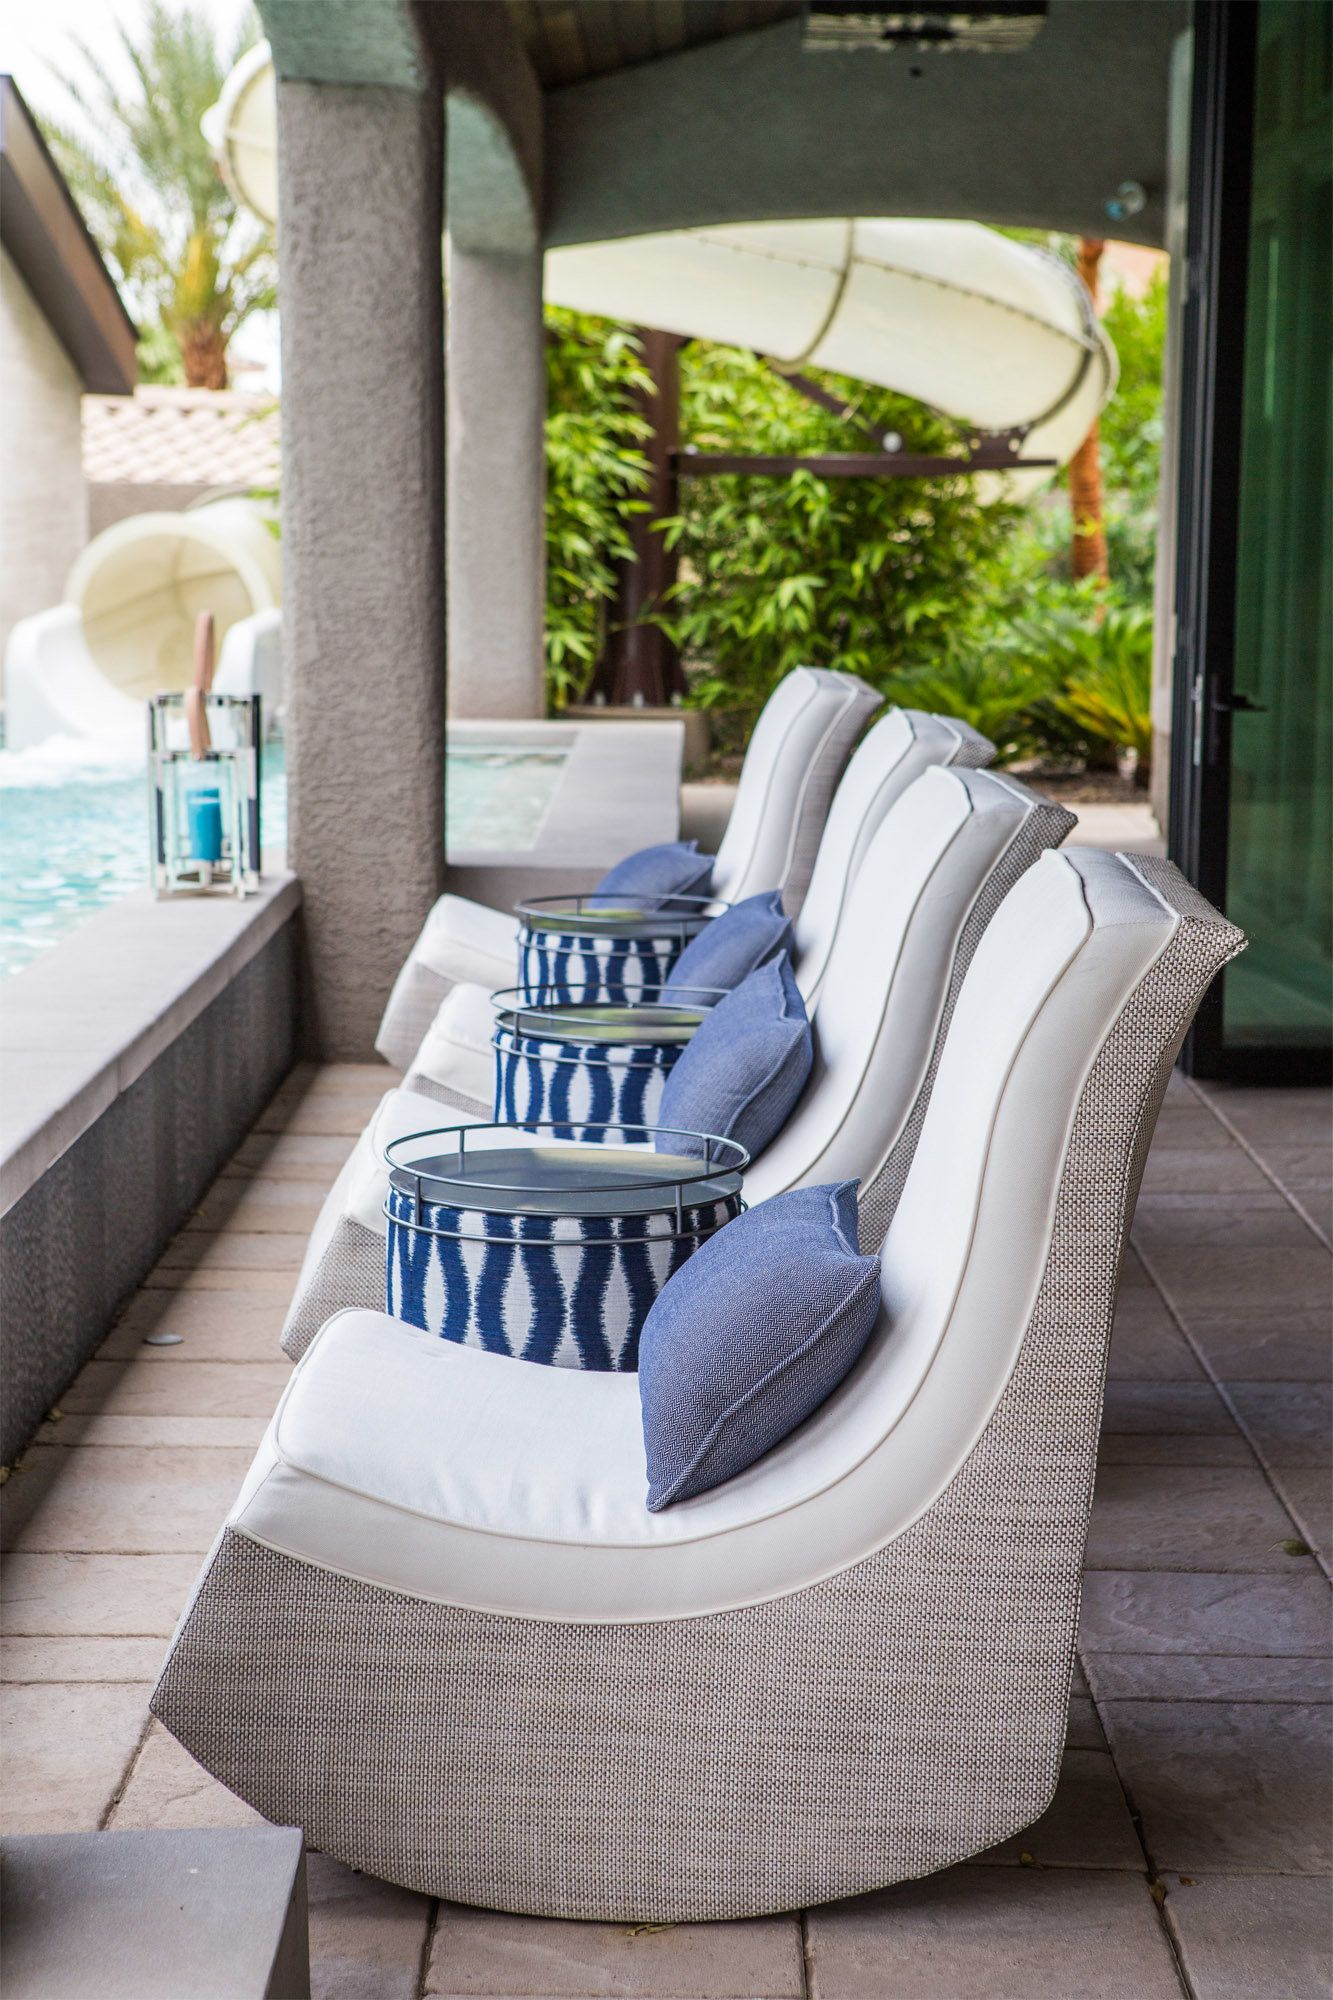 hey here s an idea for a show rocking chairs water slides and porch